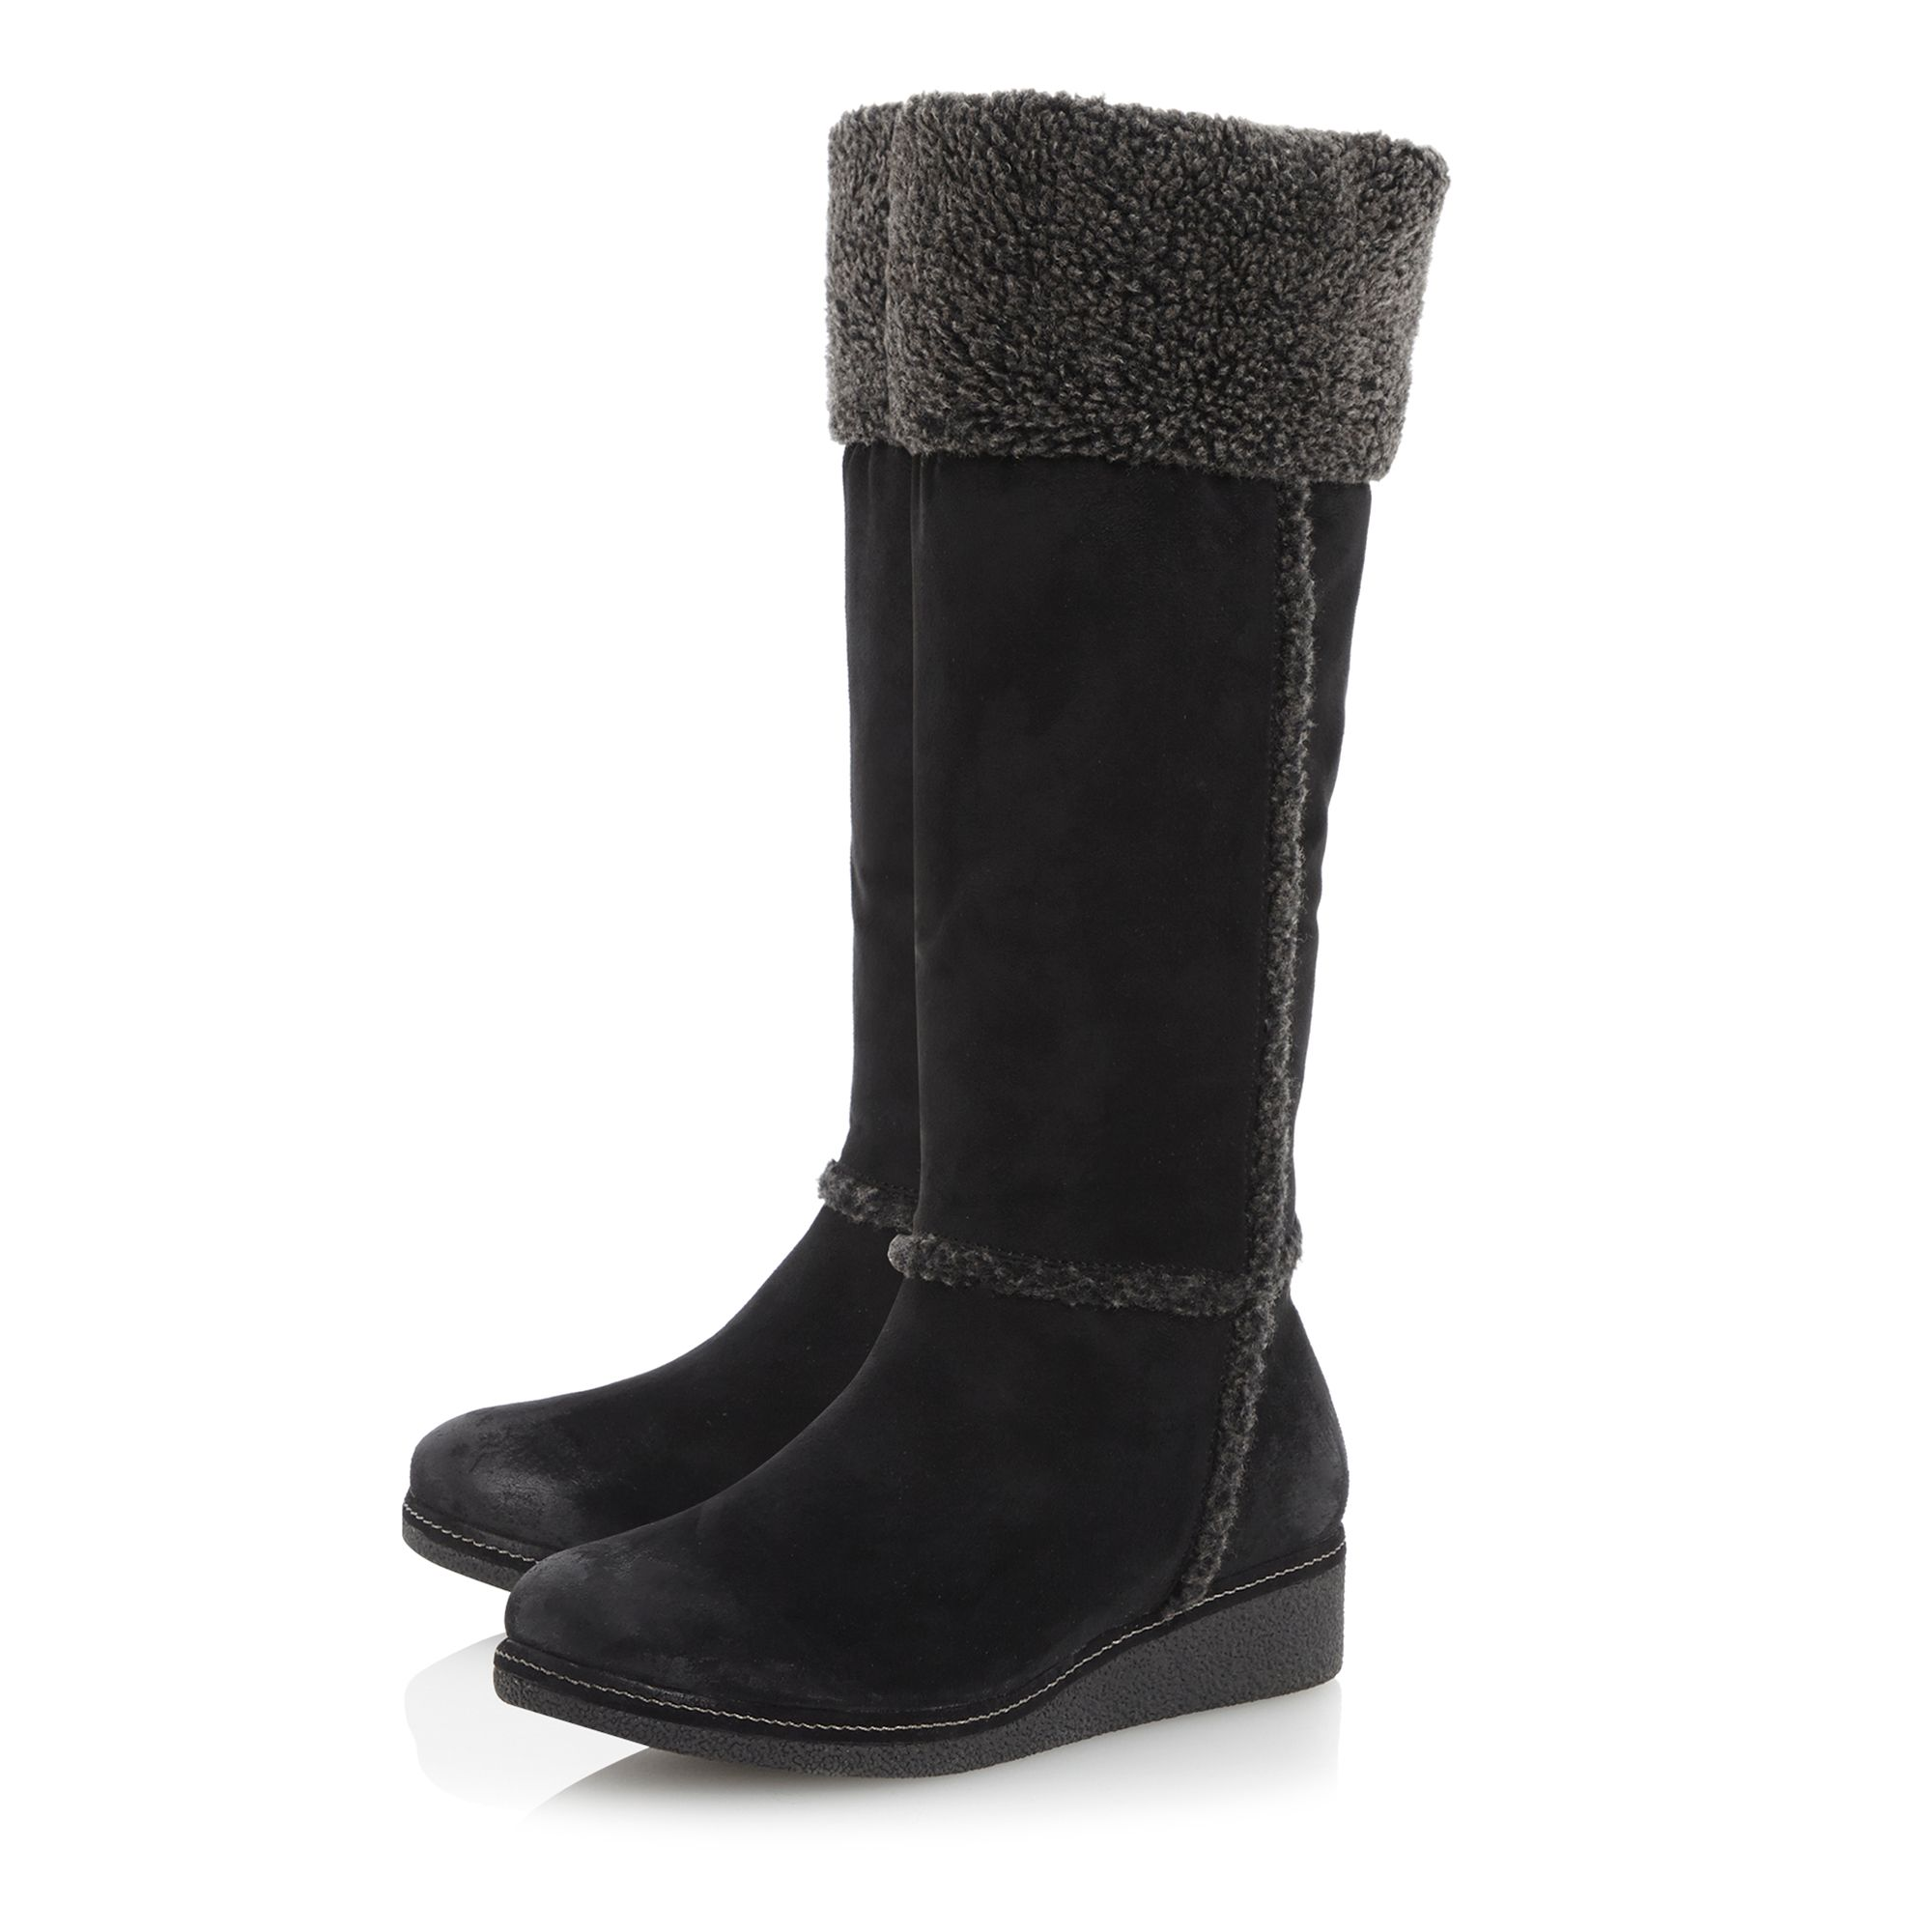 Talgarth faux fur cuff crepe sole wedge boots